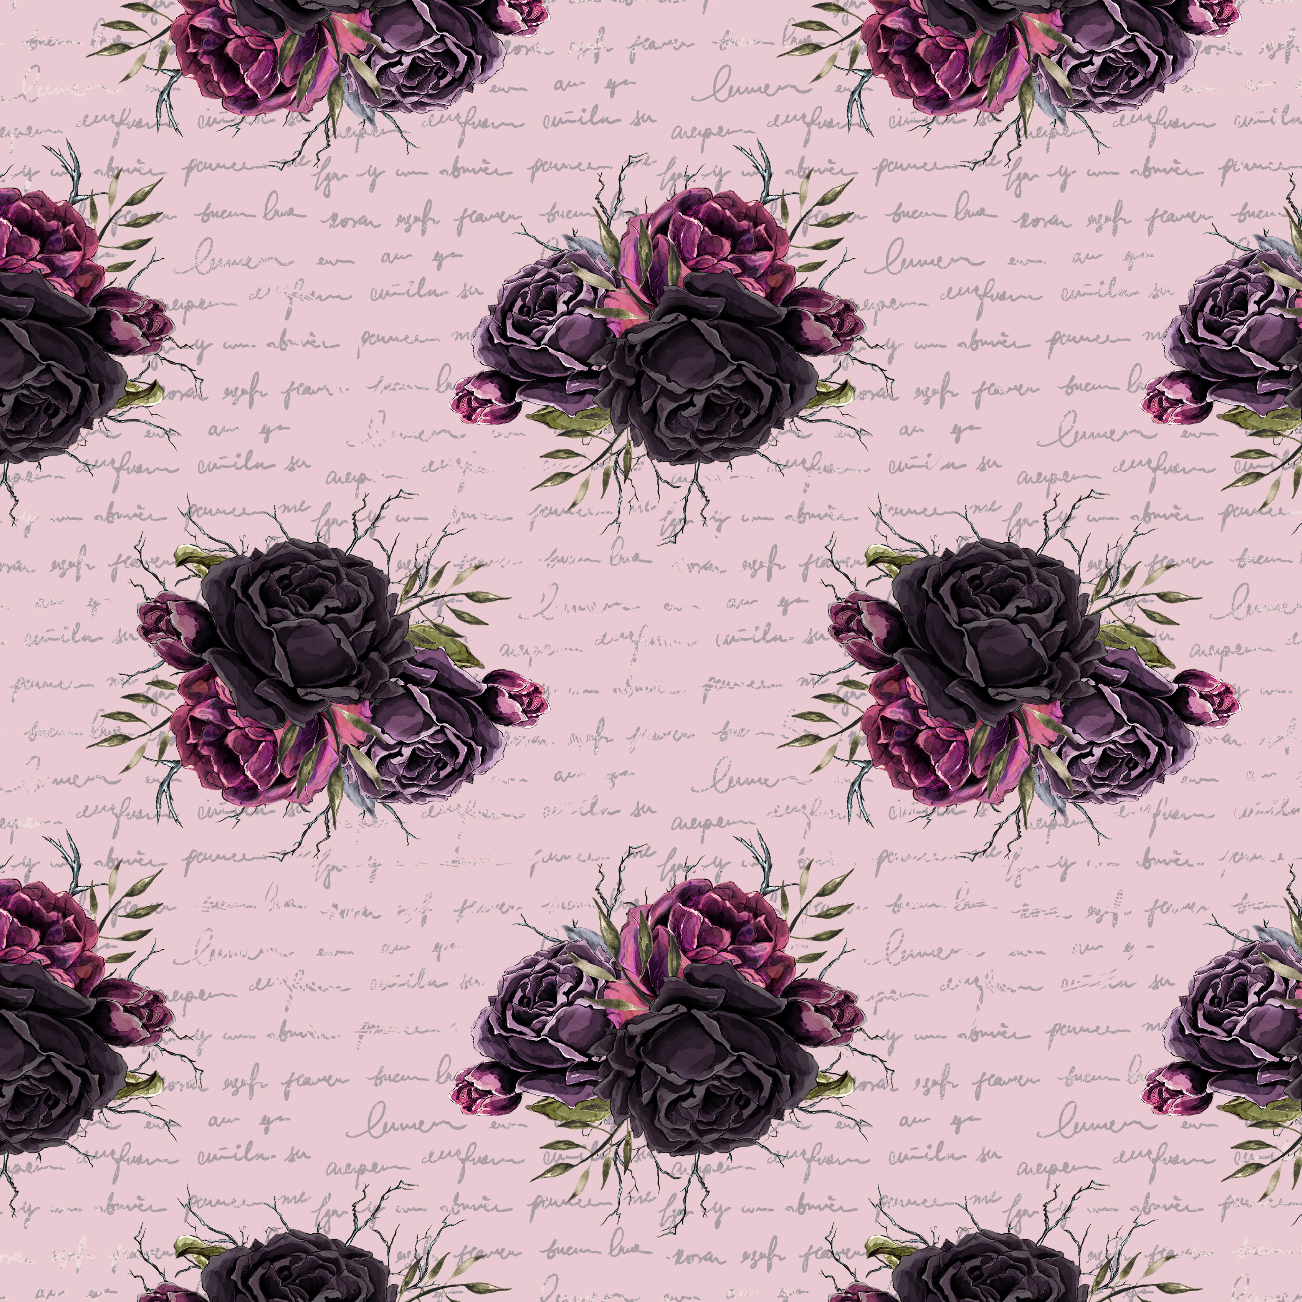 PRE ORDER Witches Garden Black Roses in Pink Fabric